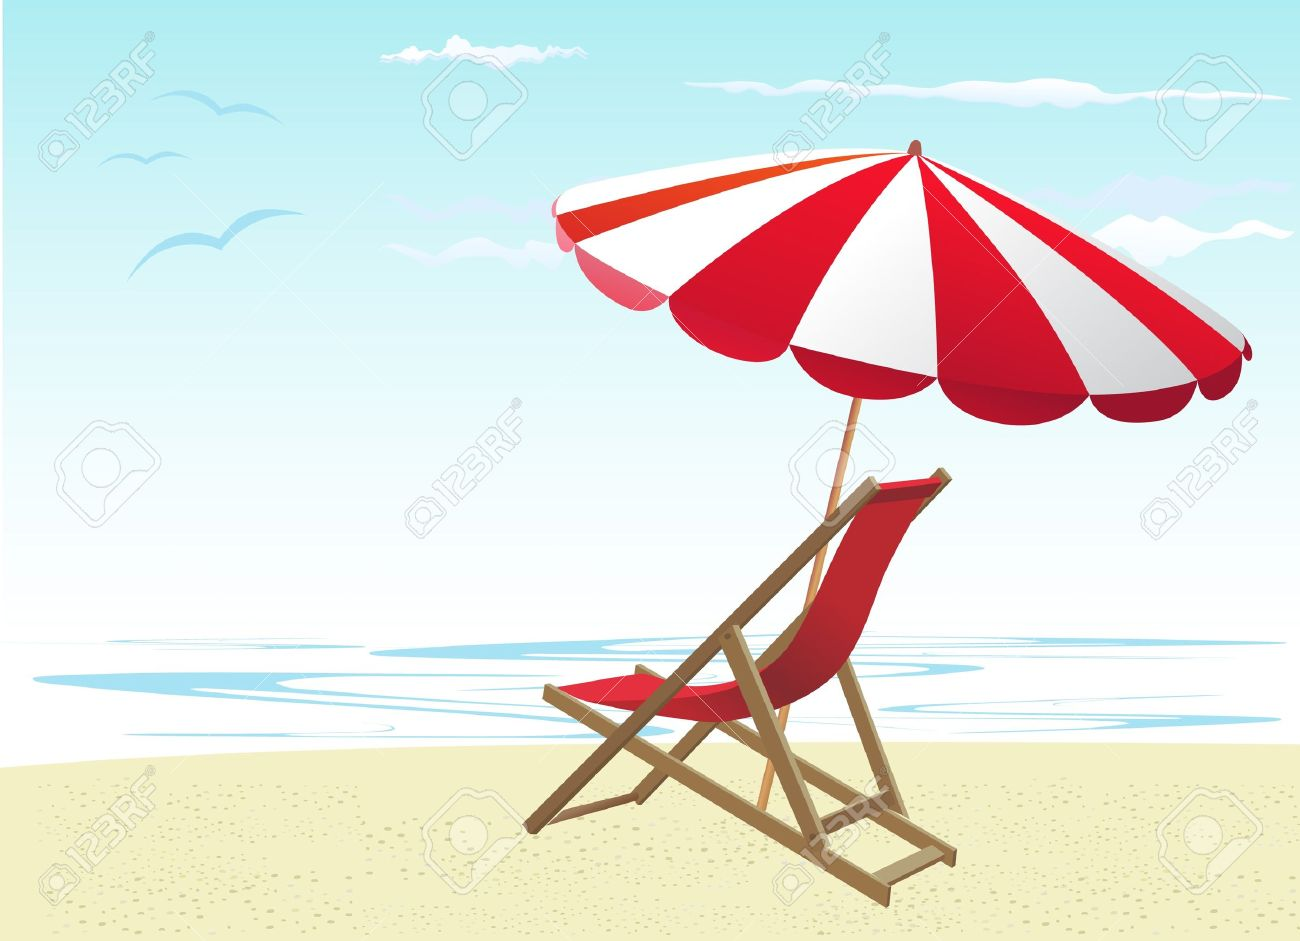 Beach chairs and umbrella Stock Vector - 10182917  sc 1 st  123RF.com & Beach Chairs And Umbrella Royalty Free Cliparts Vectors And Stock ...